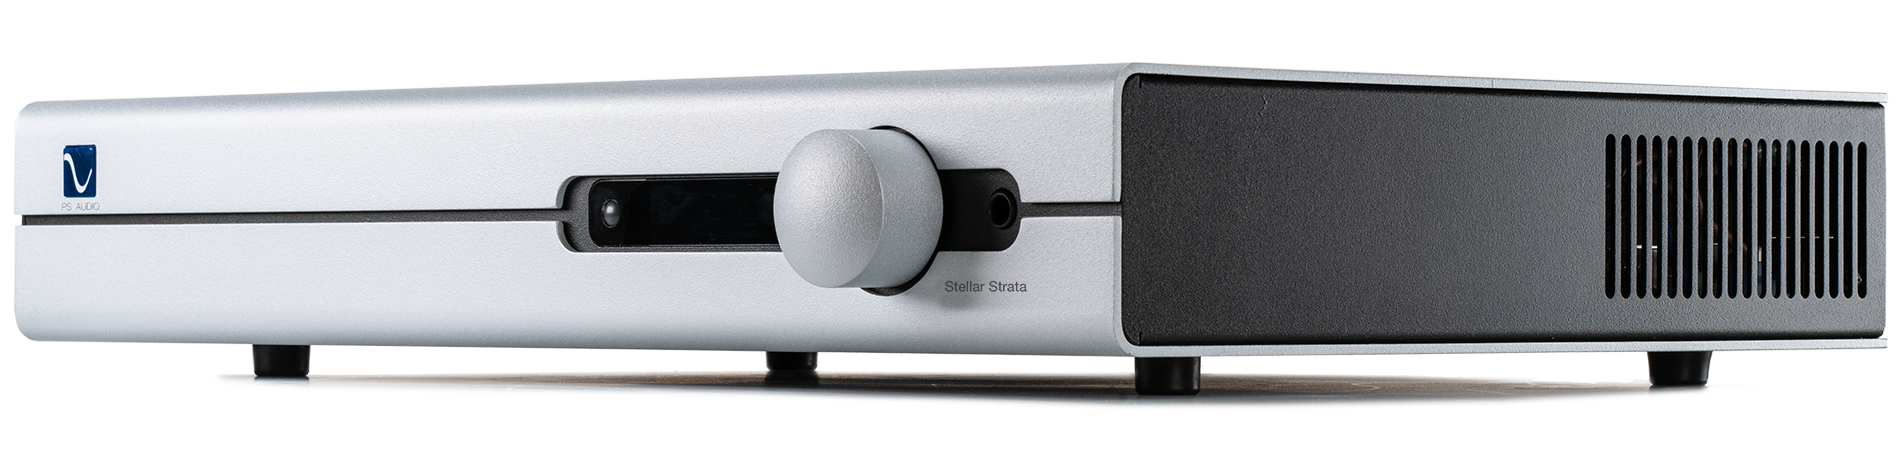 PS AUDIO STELLAR STRATA